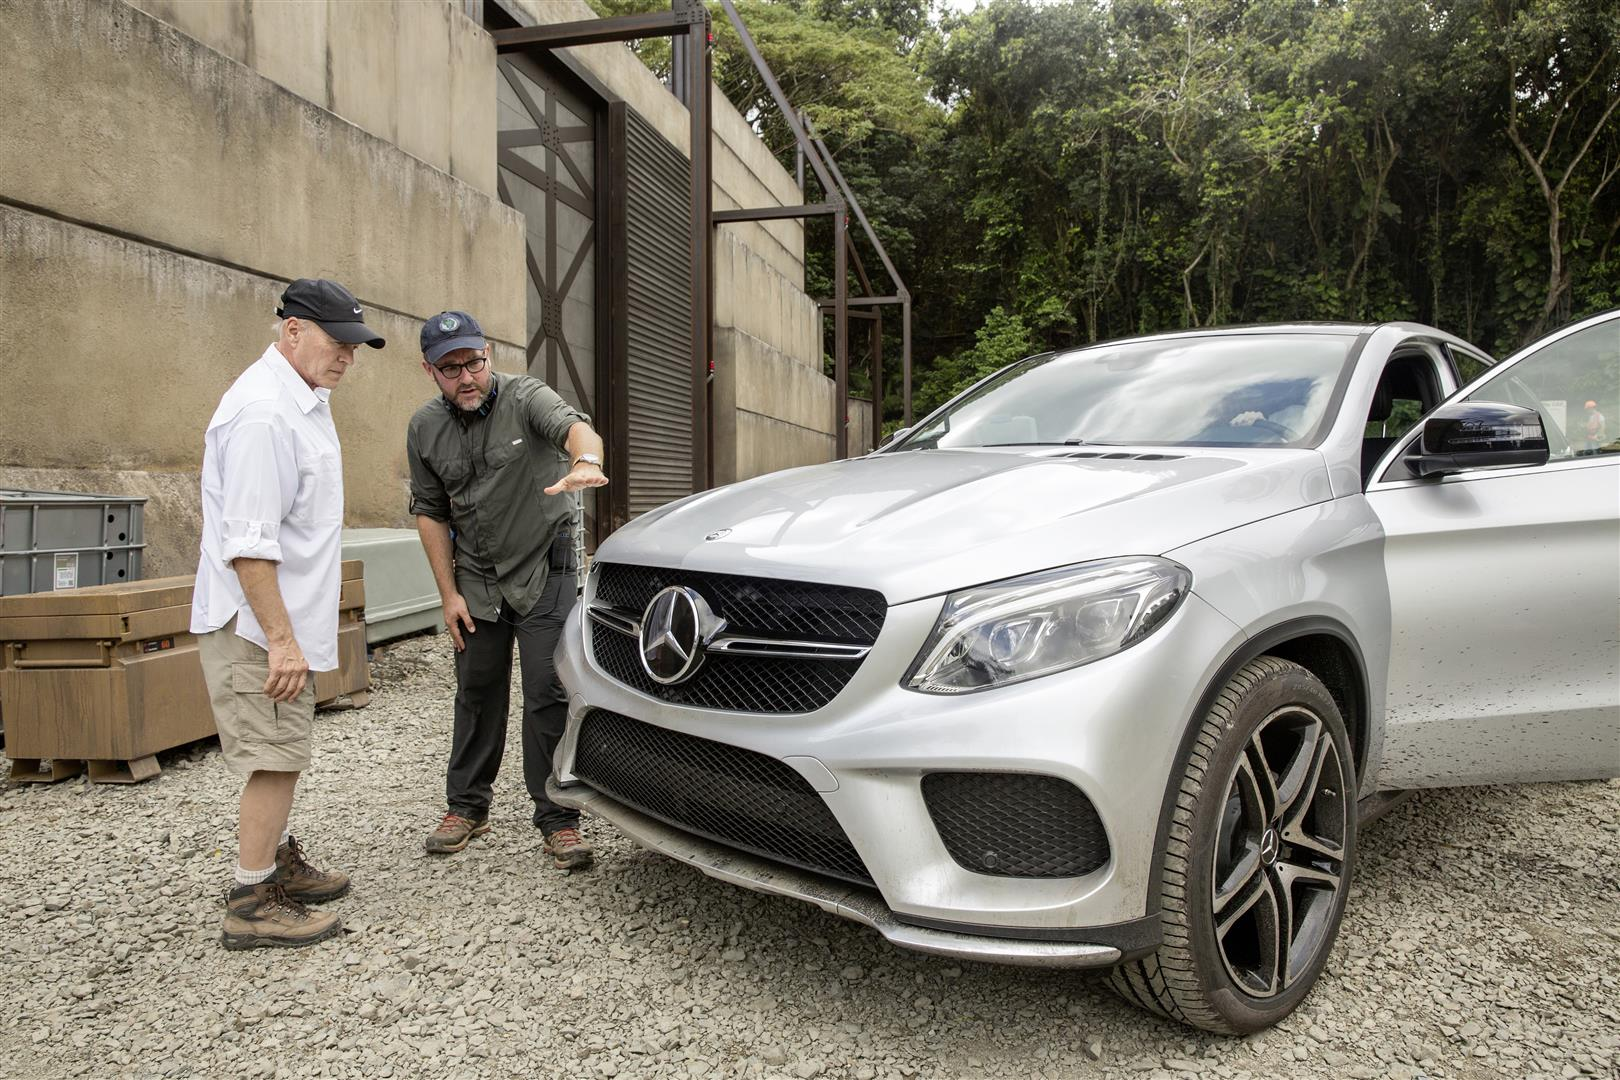 Producer Frank Marshall (left) and director Colin Trevorrow (right) preparing for filming the all-new Mercedes-Benz GLE Coupé on the set of Jurassic World. photo: mercedes-benz